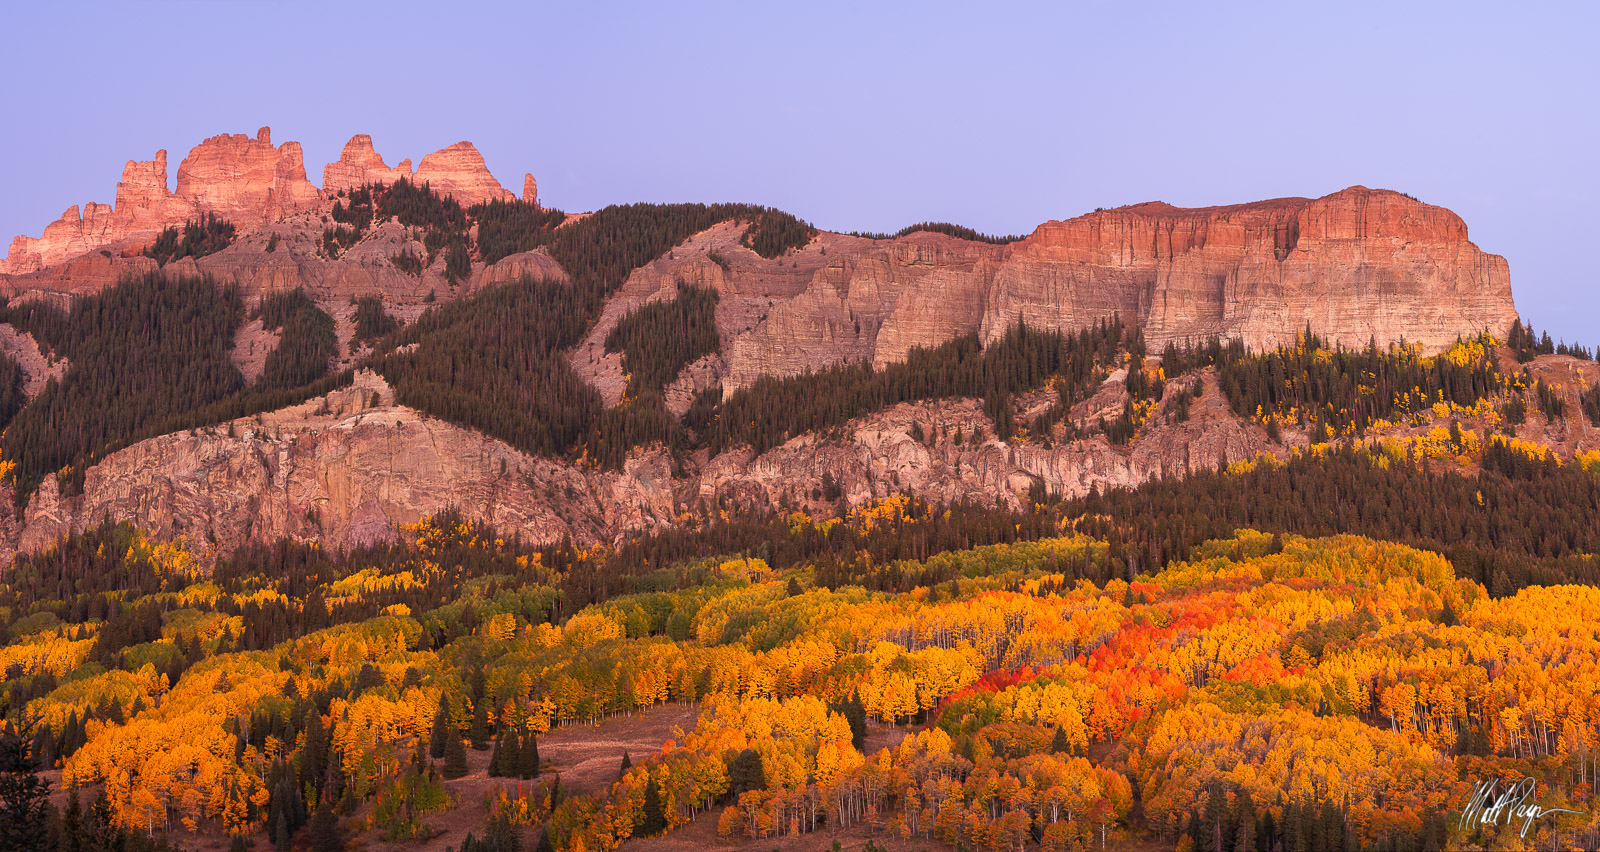 Alpenglow, Aspen Trees, Autumn, Blue Hour, Colorado, Crested Butte, Fall Colors, Gunnison, Mountains, Ohio Pass, Panorama, Panoramic, Sunrise, The Castles, West Elk Mountains, photo